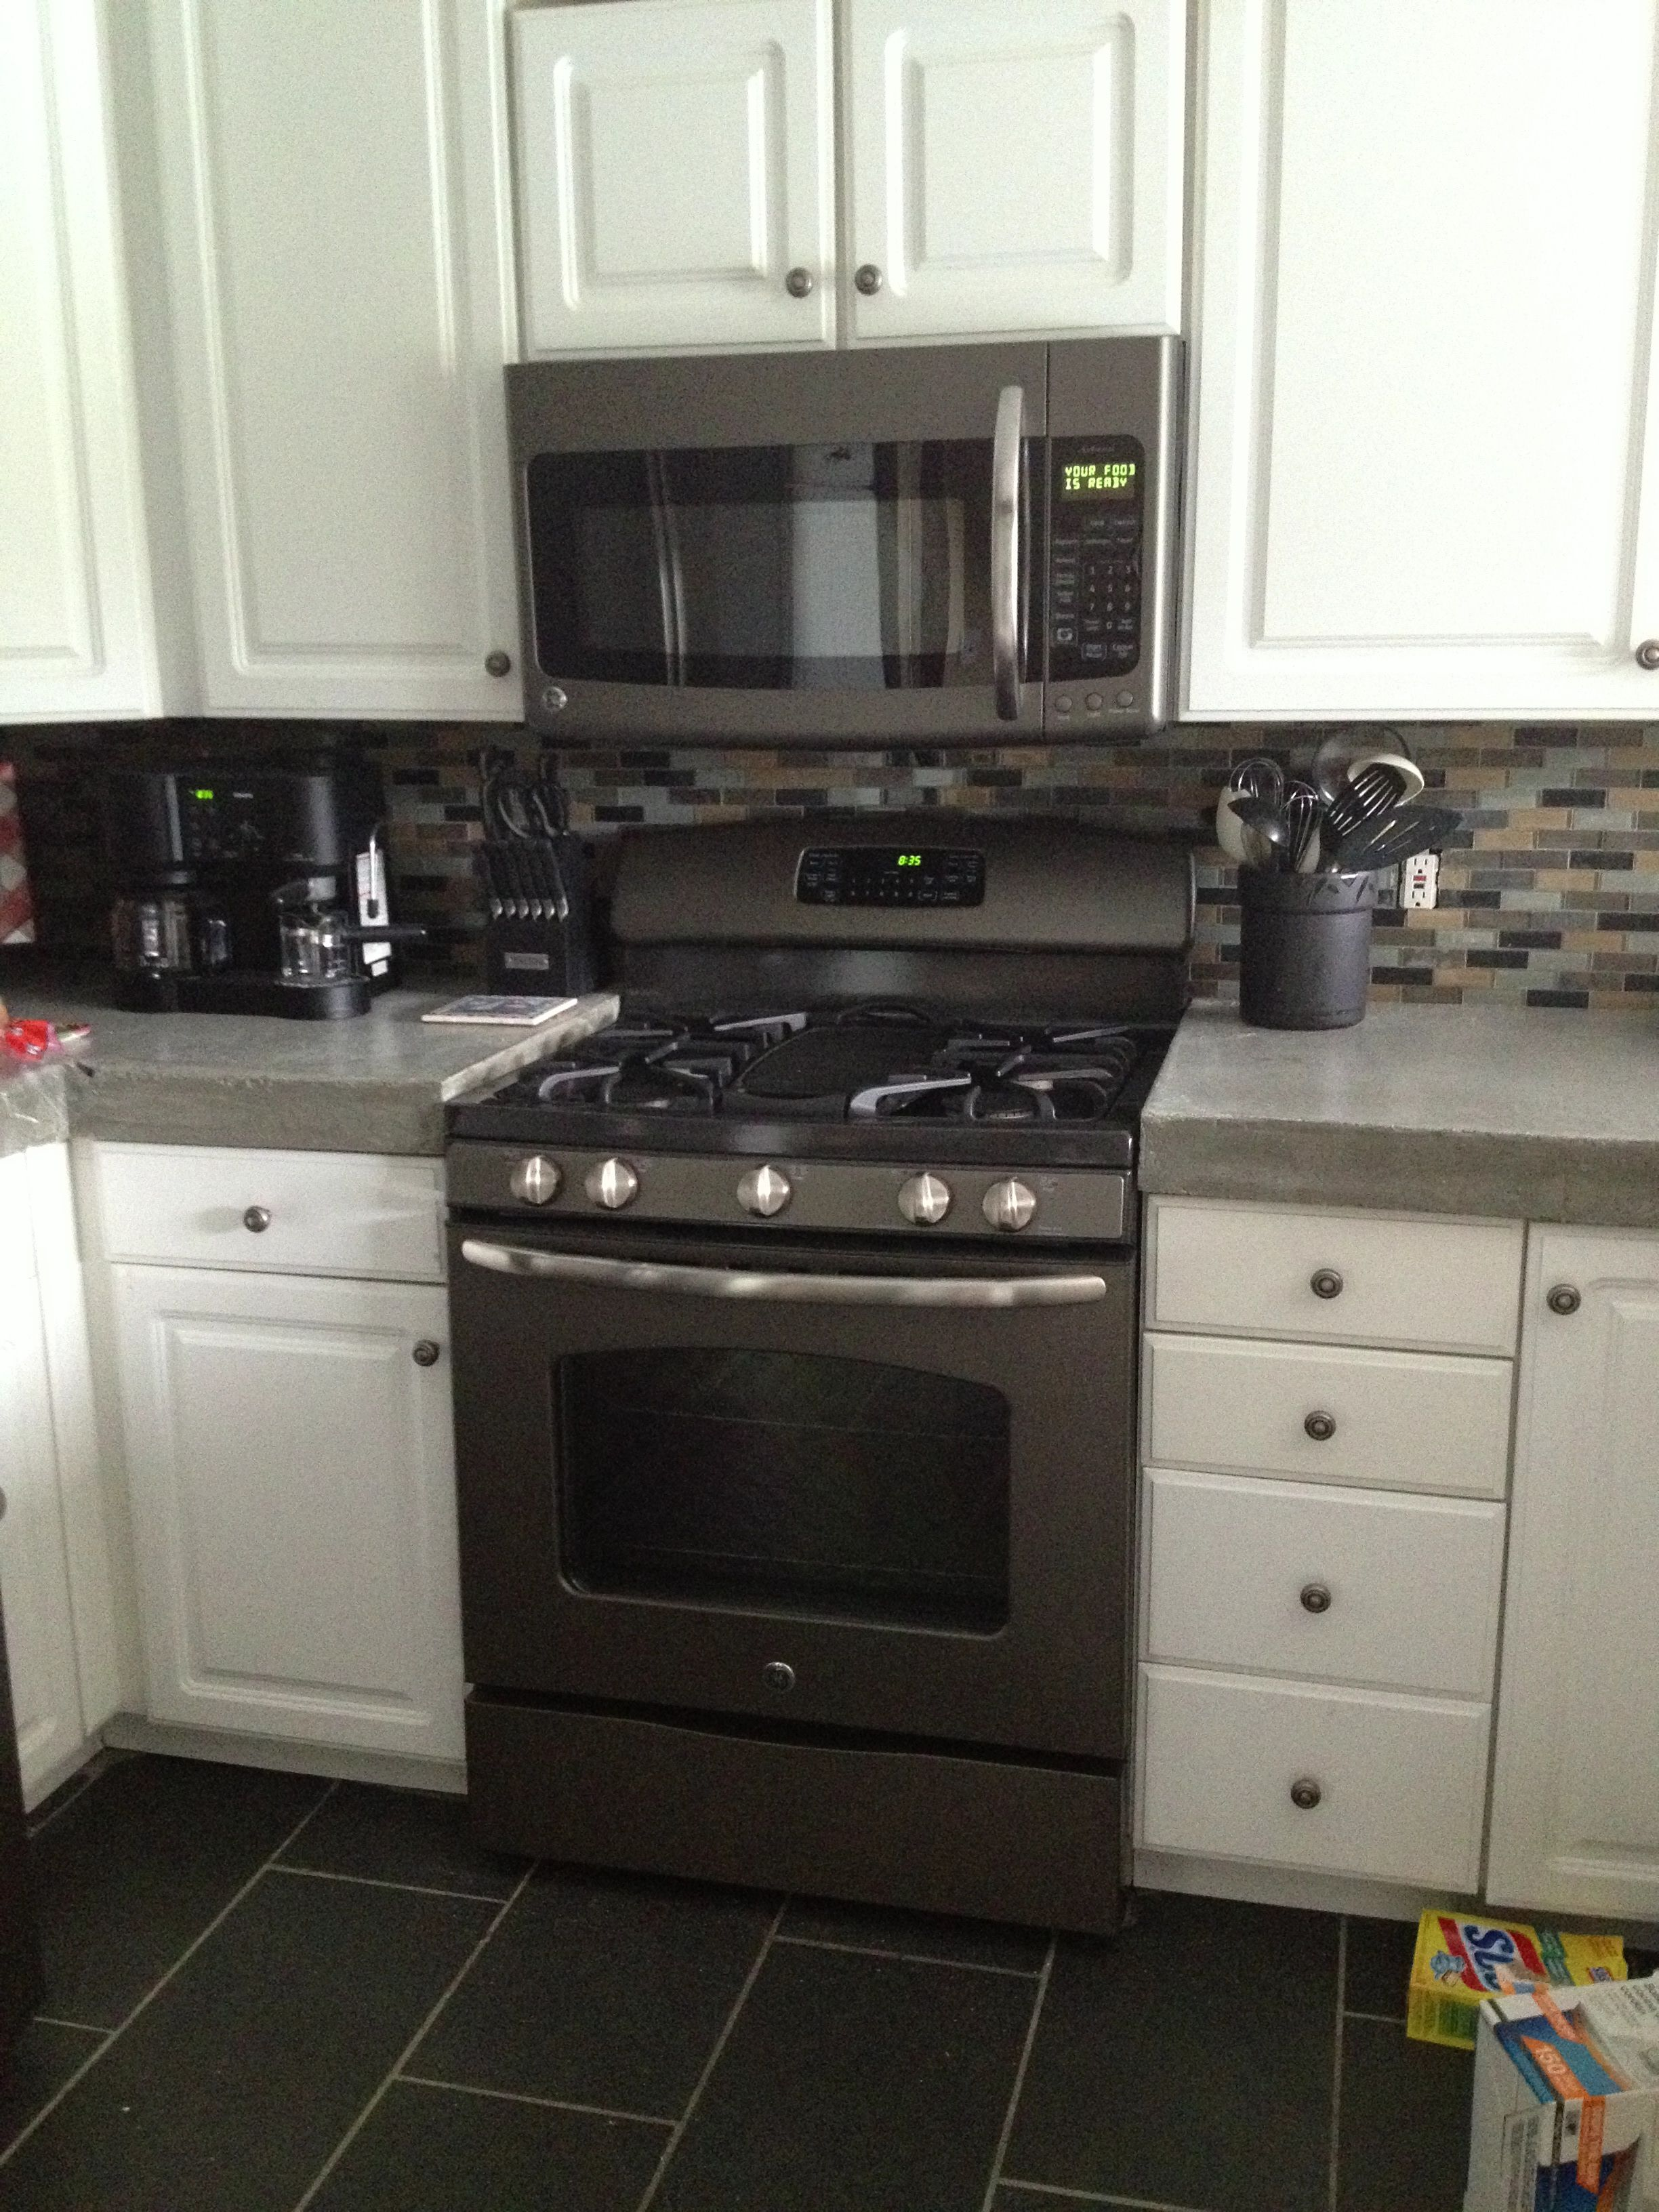 My new appliances slate kitchen Pinterest